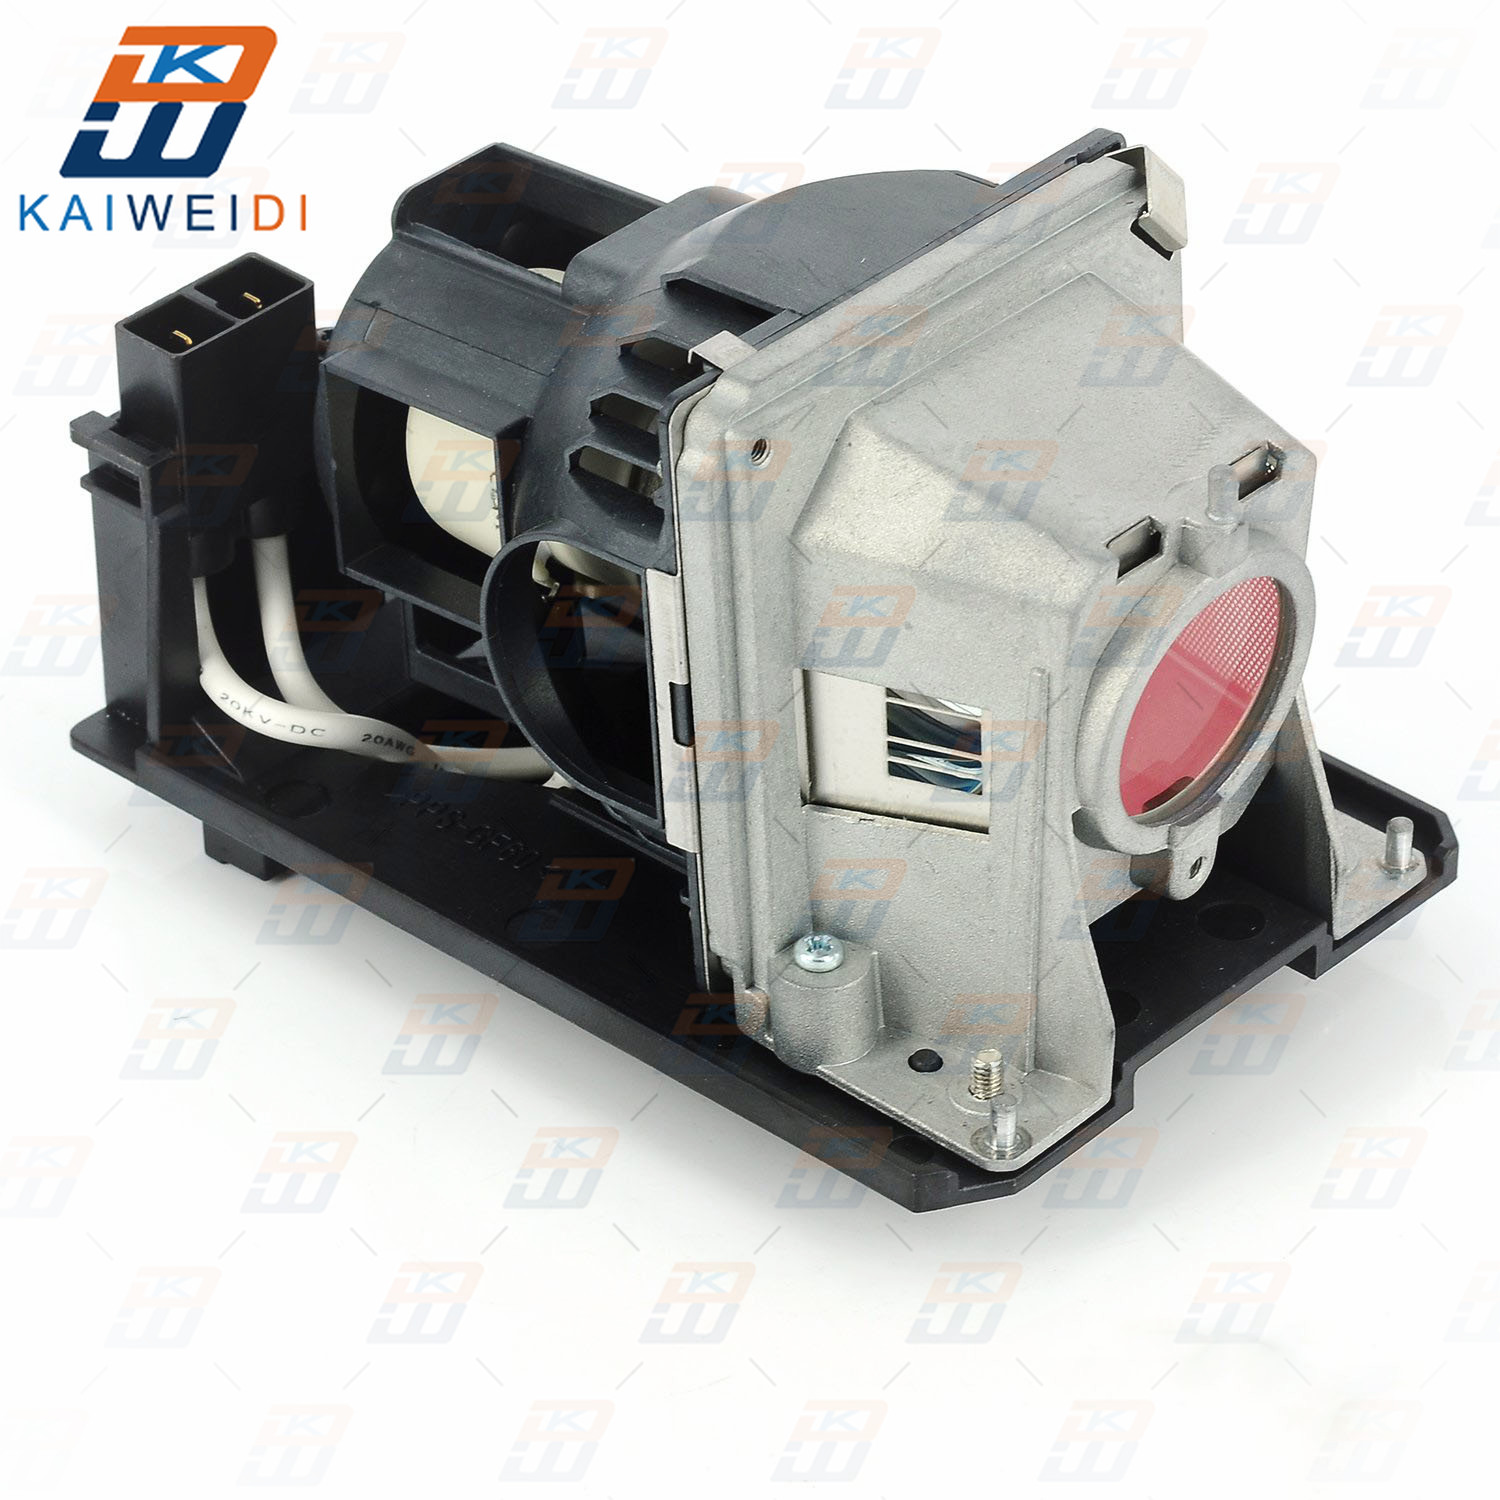 NP13LP NP18LP  60003128 Replacement Projector Lamp with Housing for NEC NP-V300X V300X V300XG V300W V300WG V230X V260 VE280